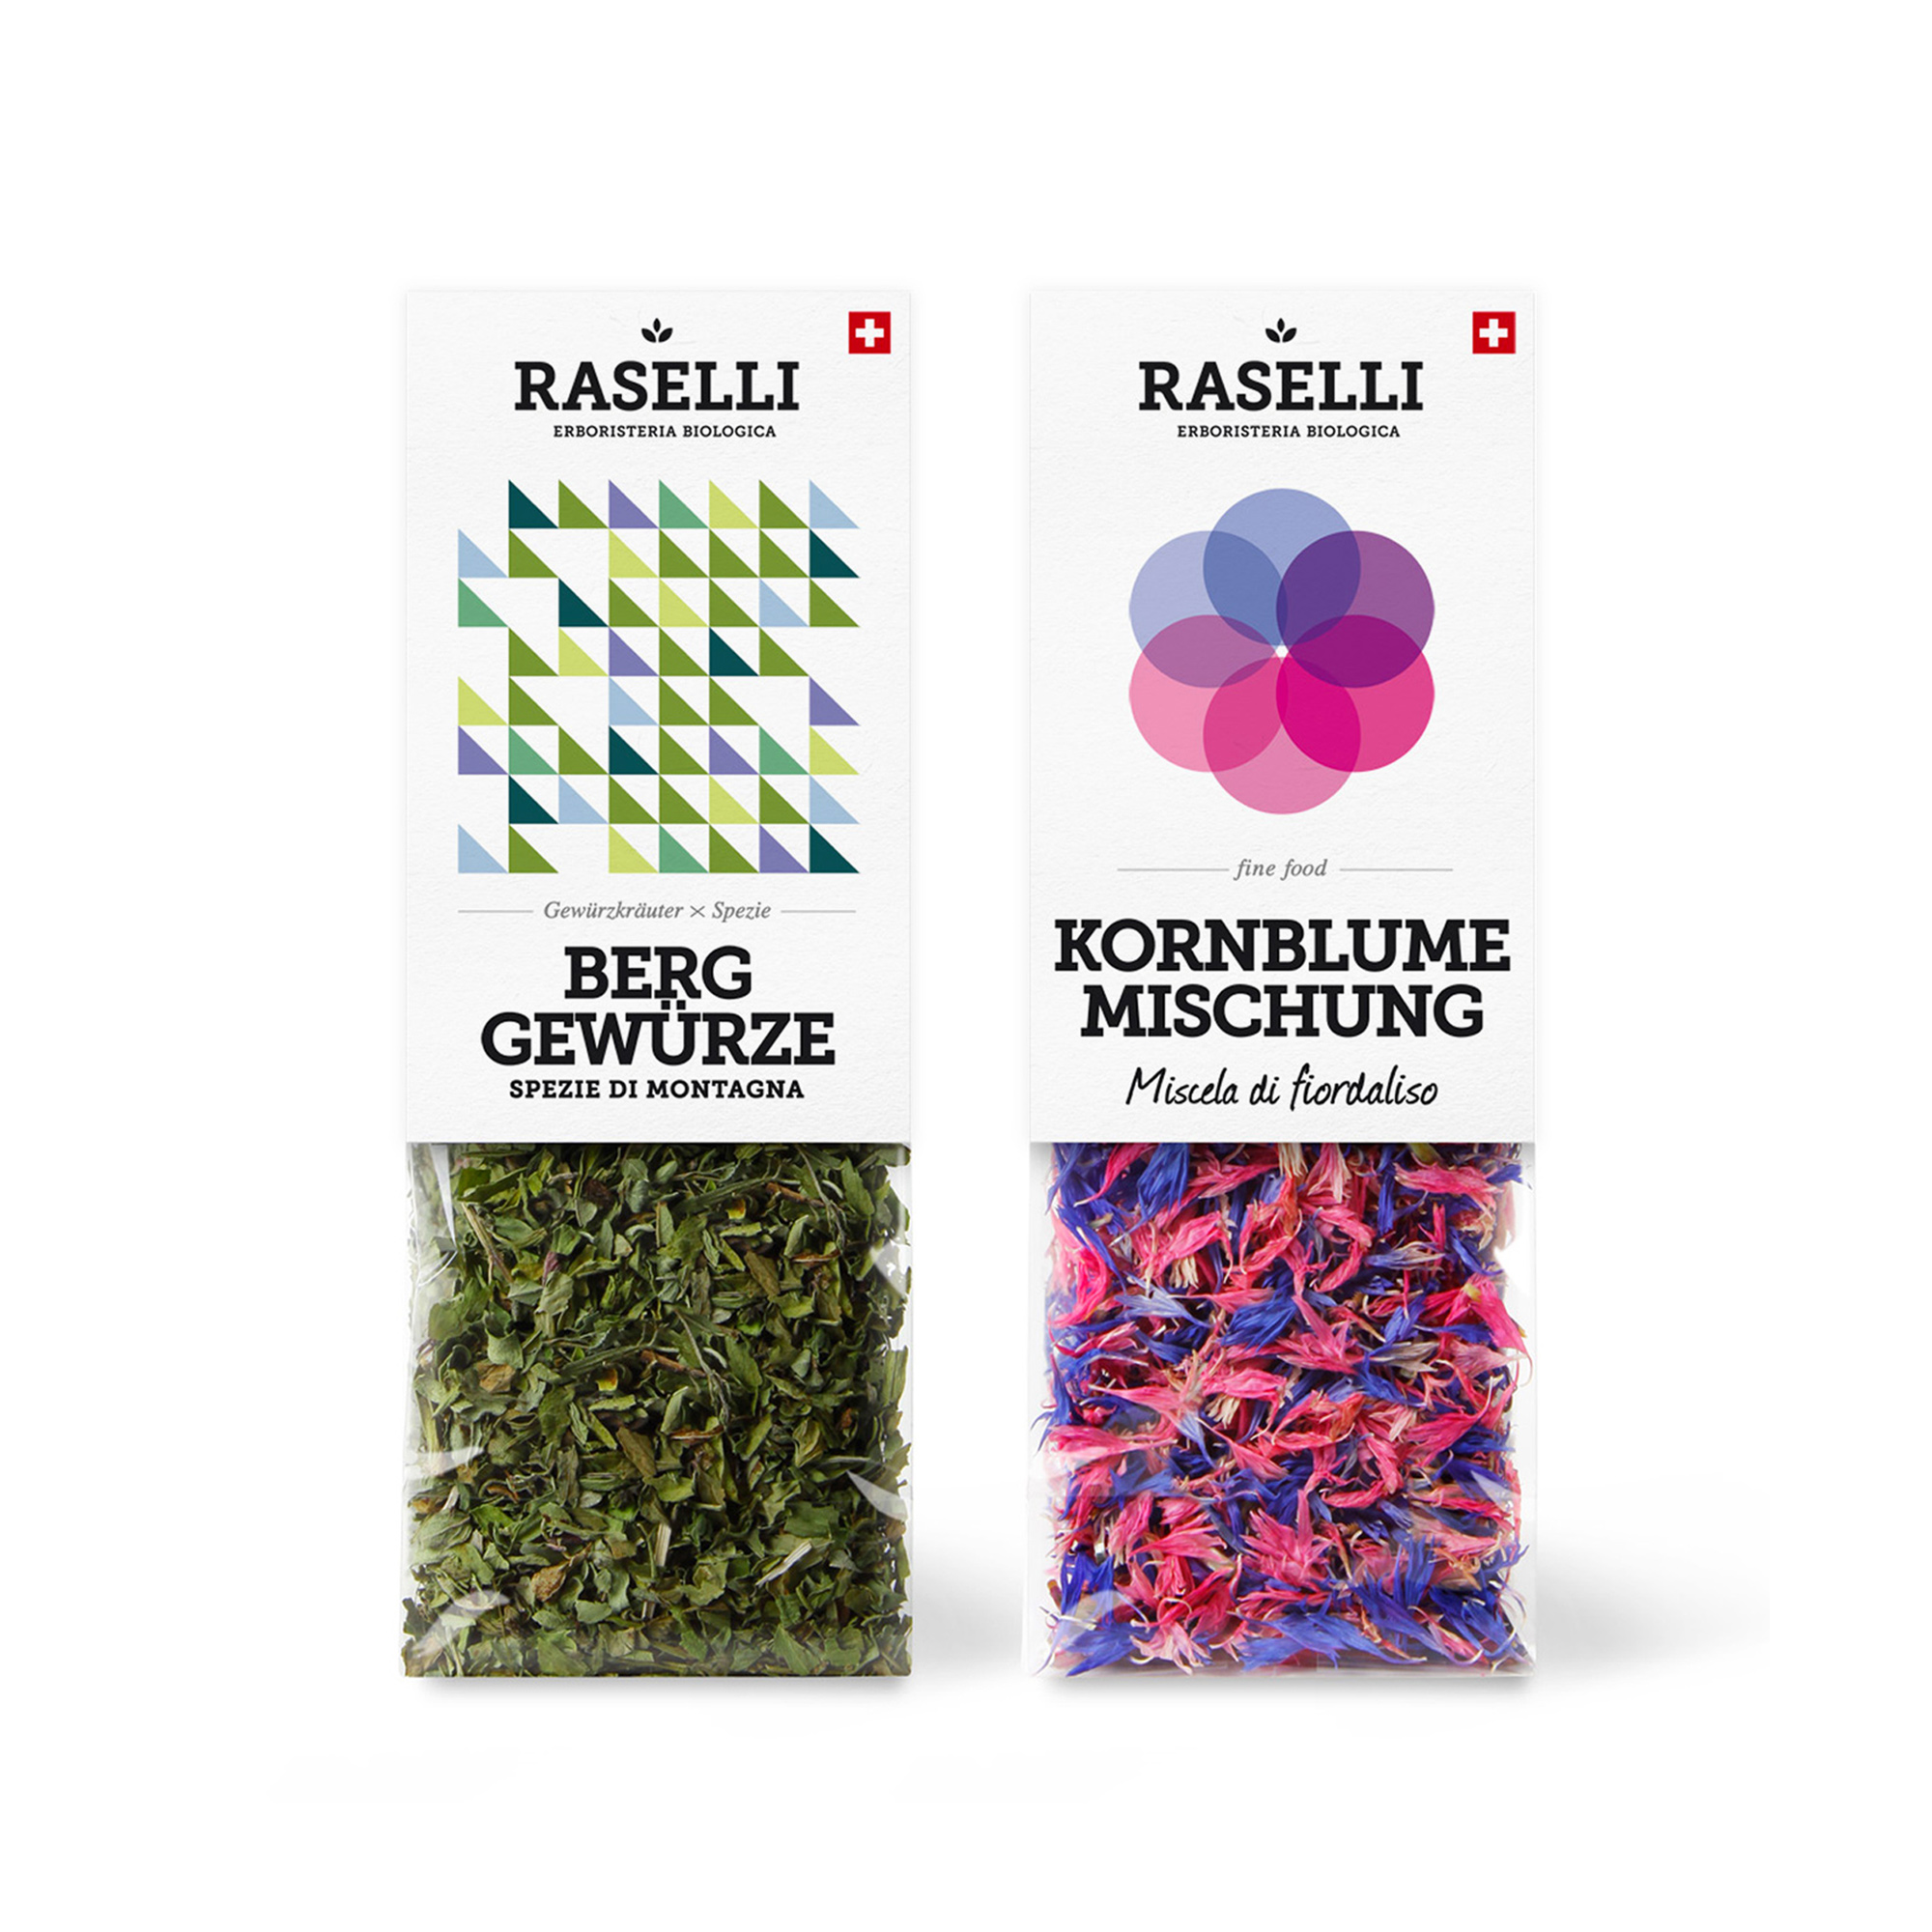 Raselli herbs & blossoms